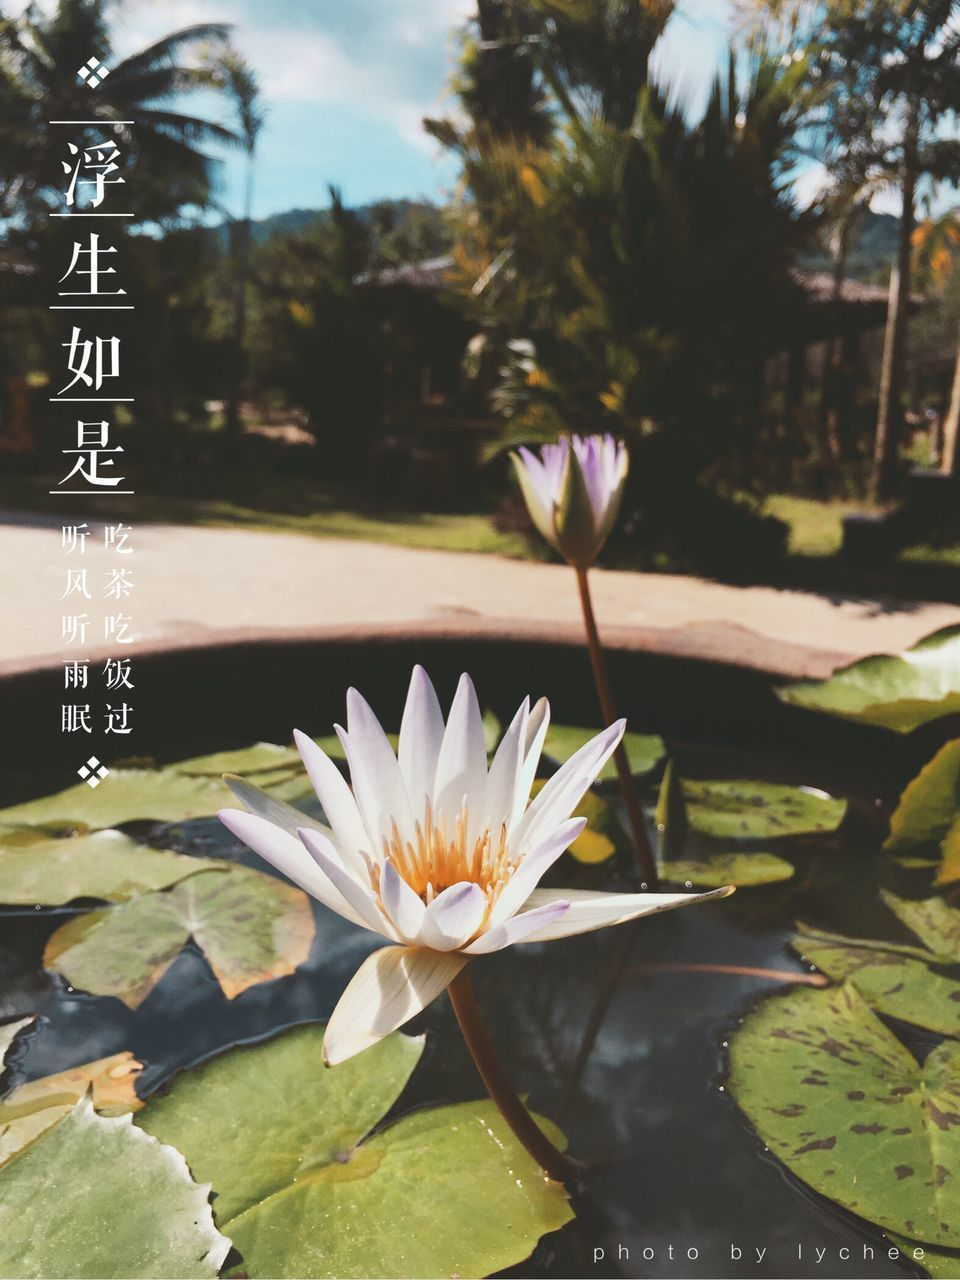 beauty in nature, pond, nature, flower, growth, plant, petal, freshness, fragility, outdoors, no people, day, water, close-up, water lily, flower head, leaf, lotus water lily, tree